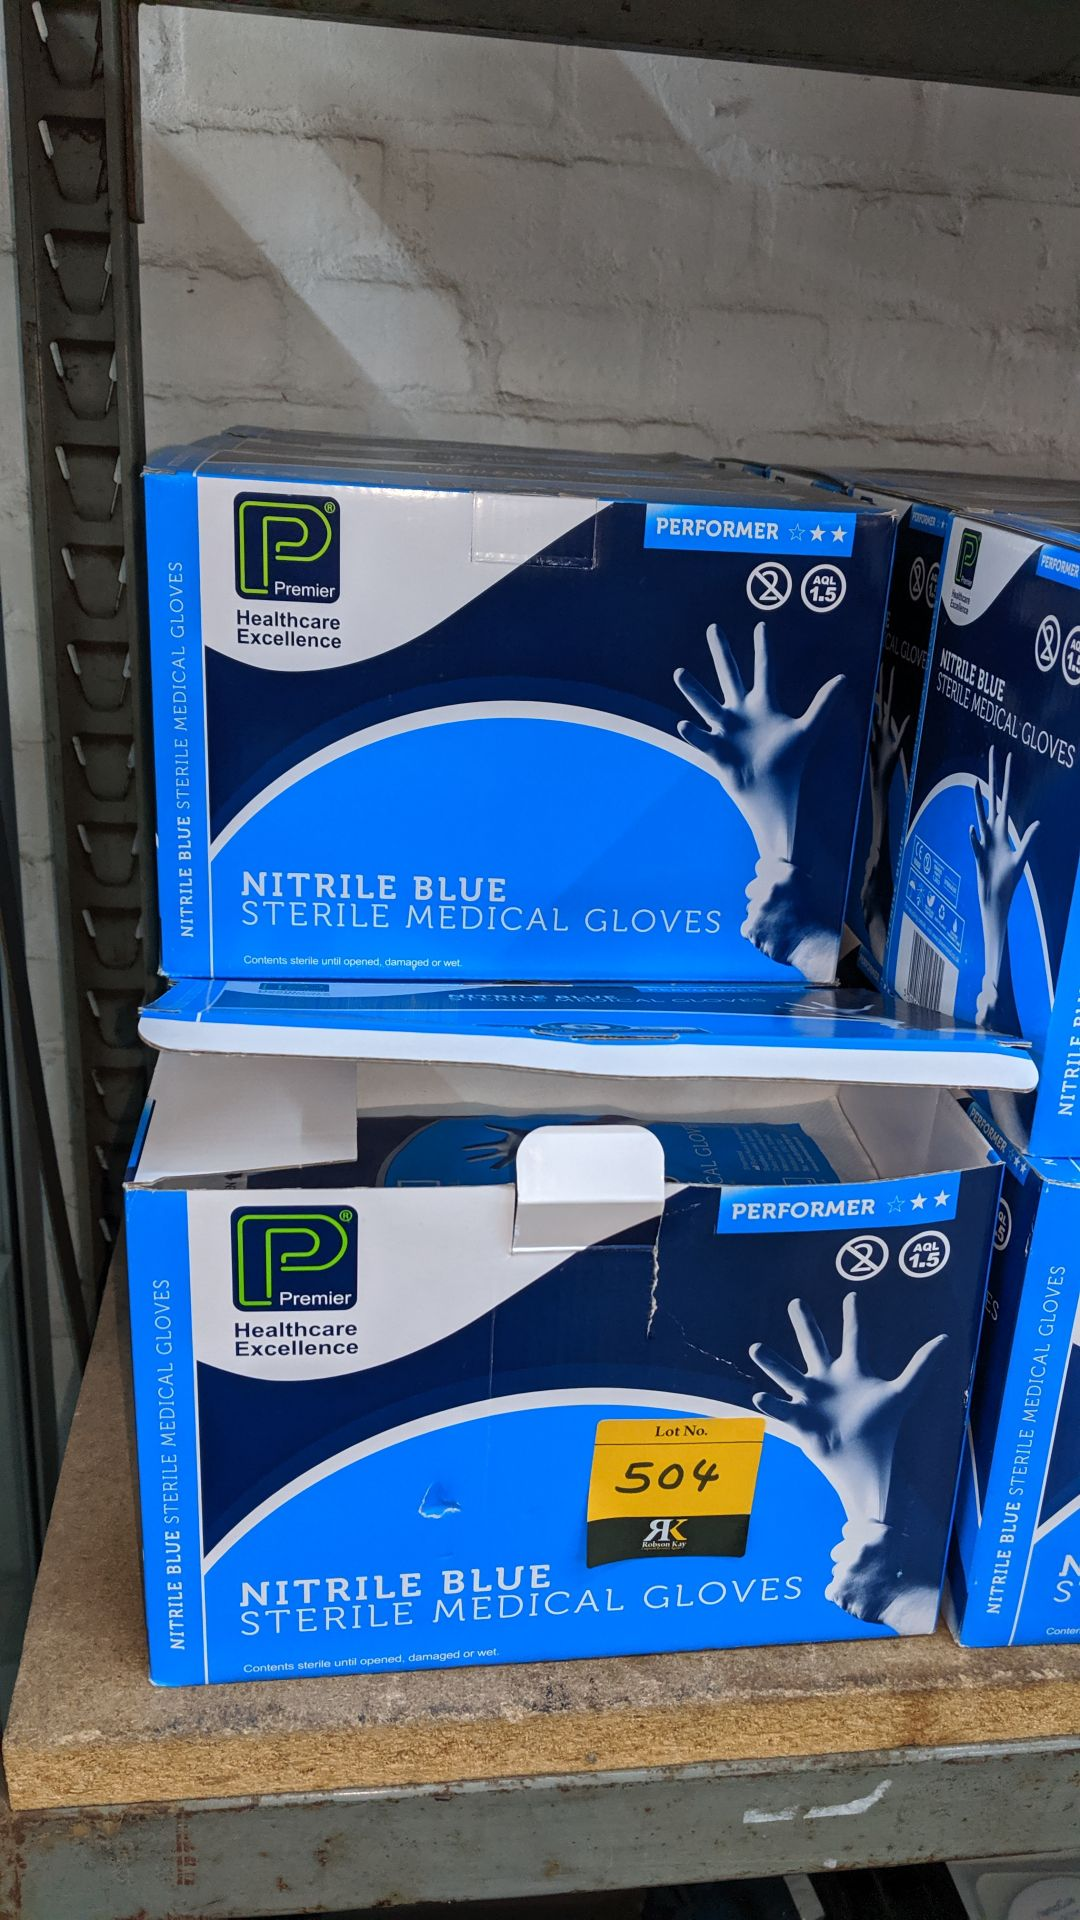 Lot 504 - 7 boxes of Nitrile blue sterile medical gloves. This is one of a large number of lots used/owned